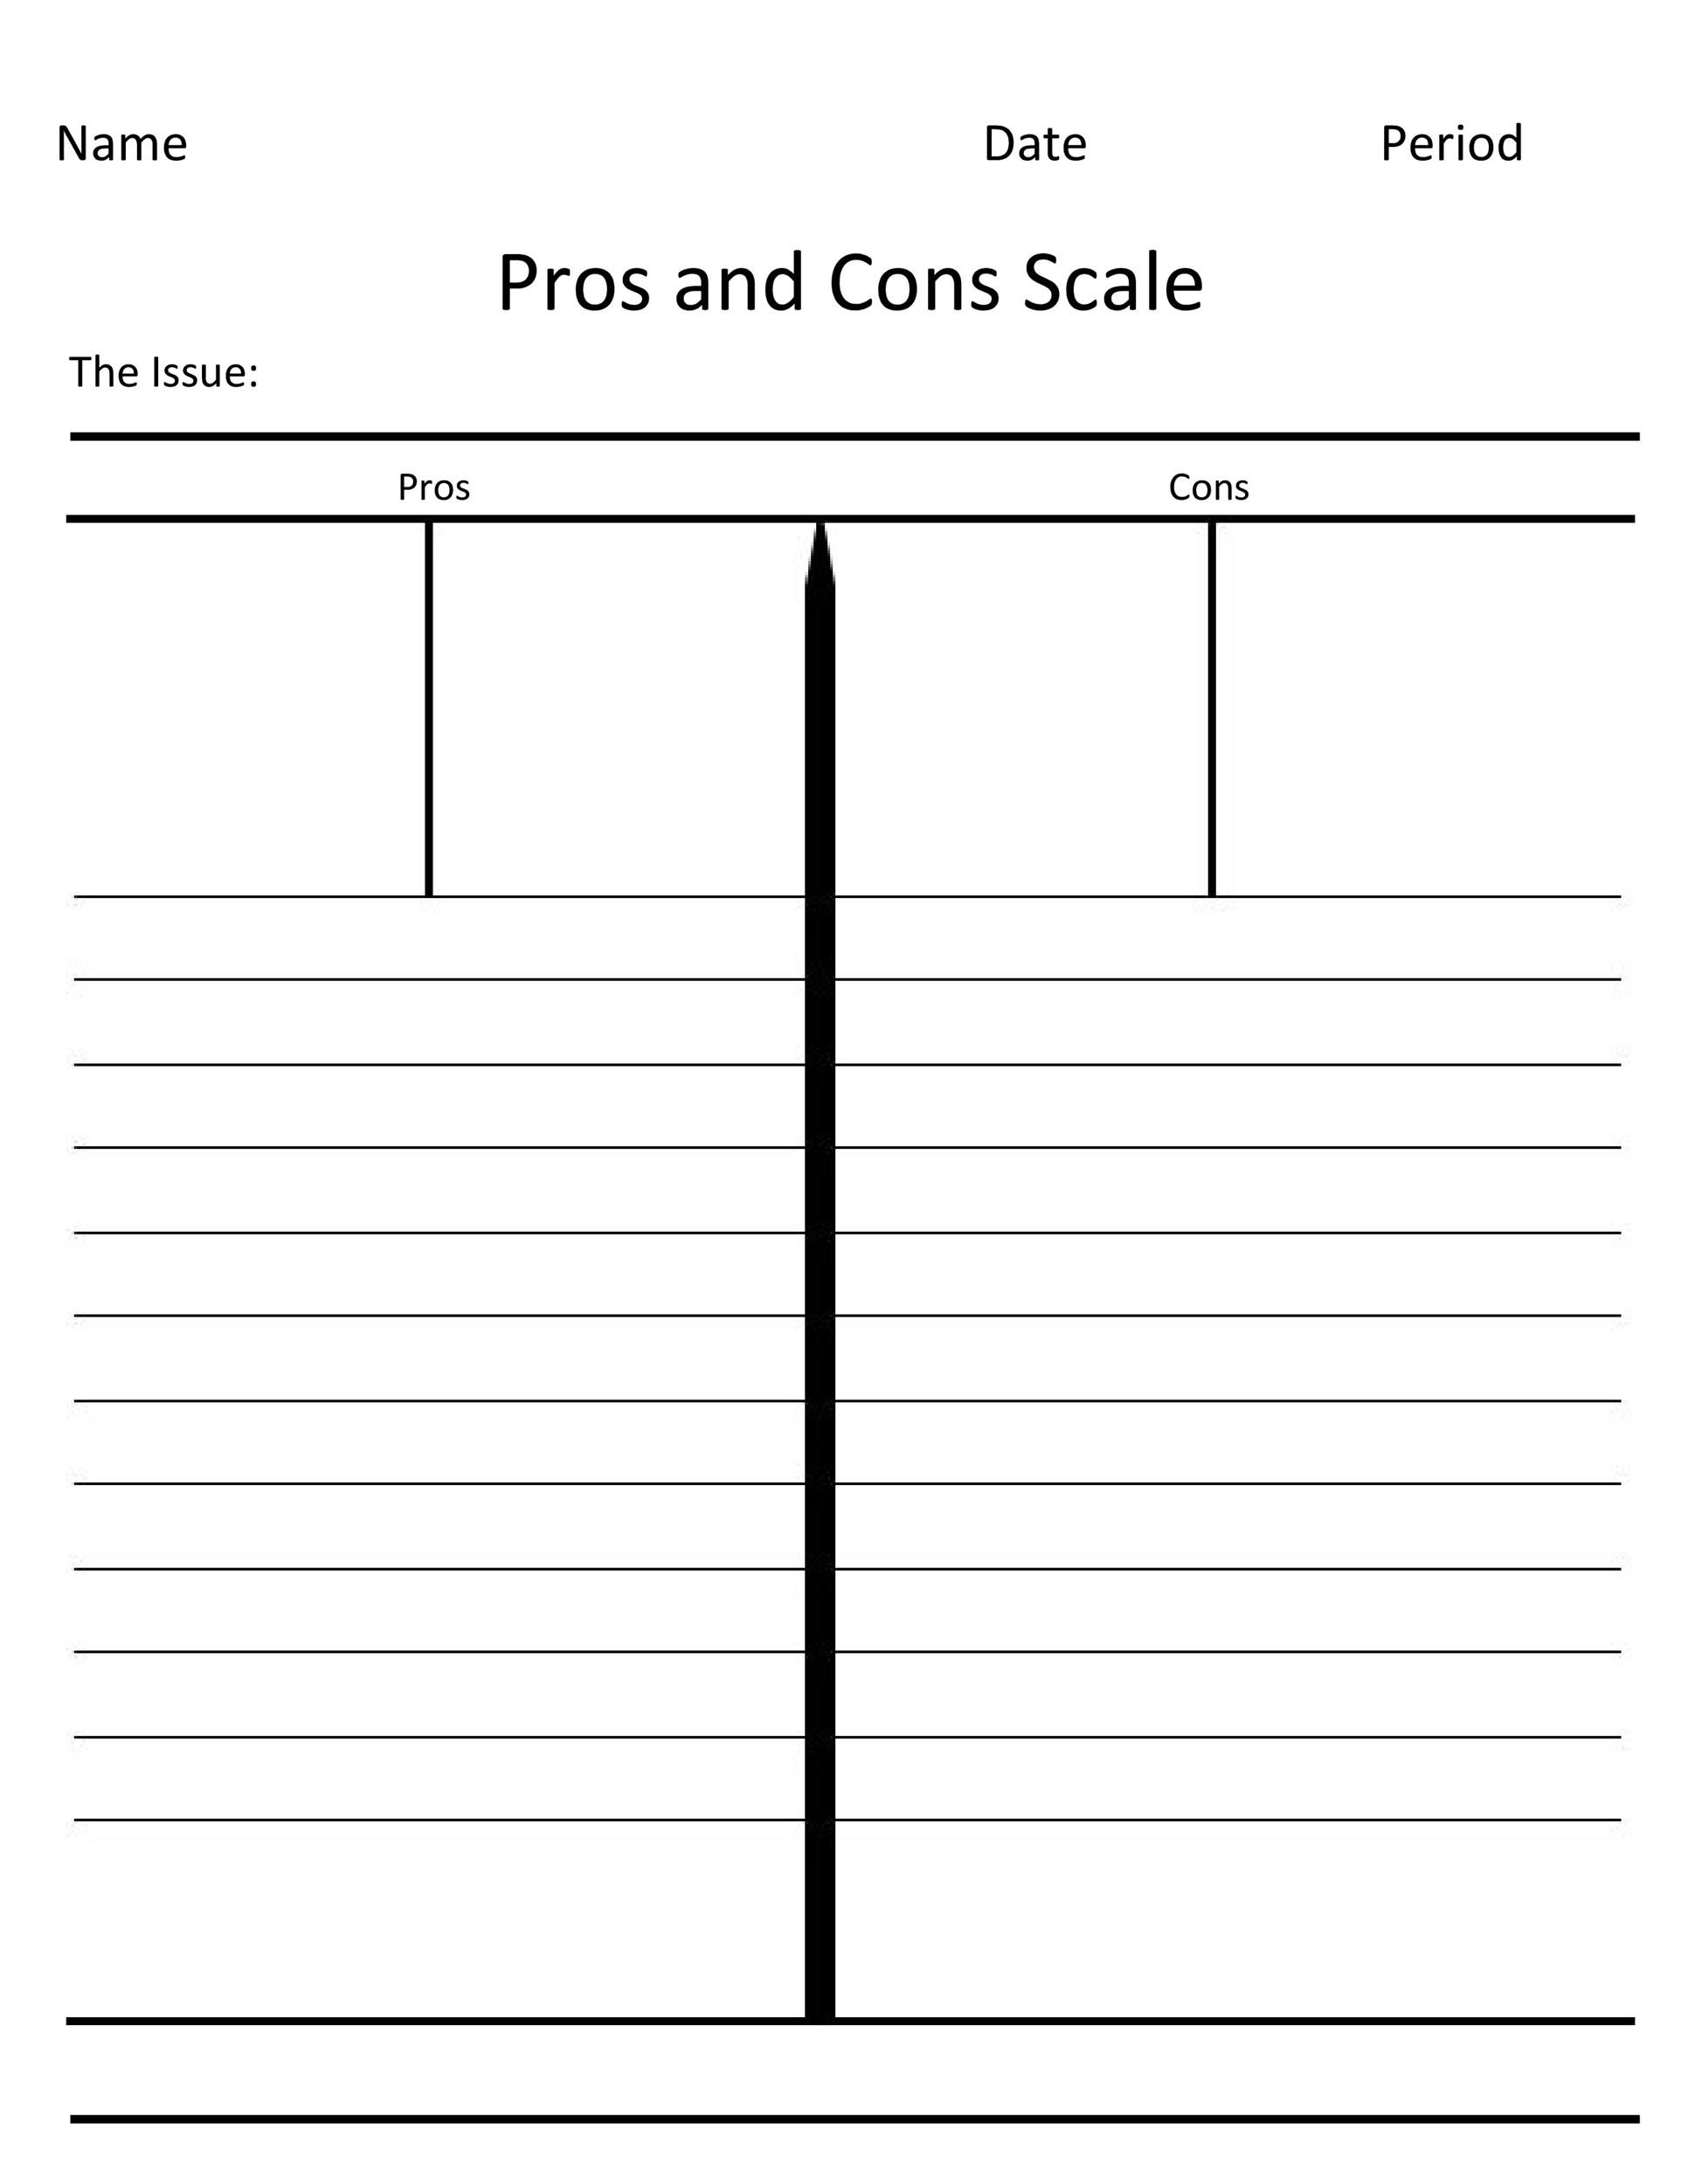 Free pros and cons 15